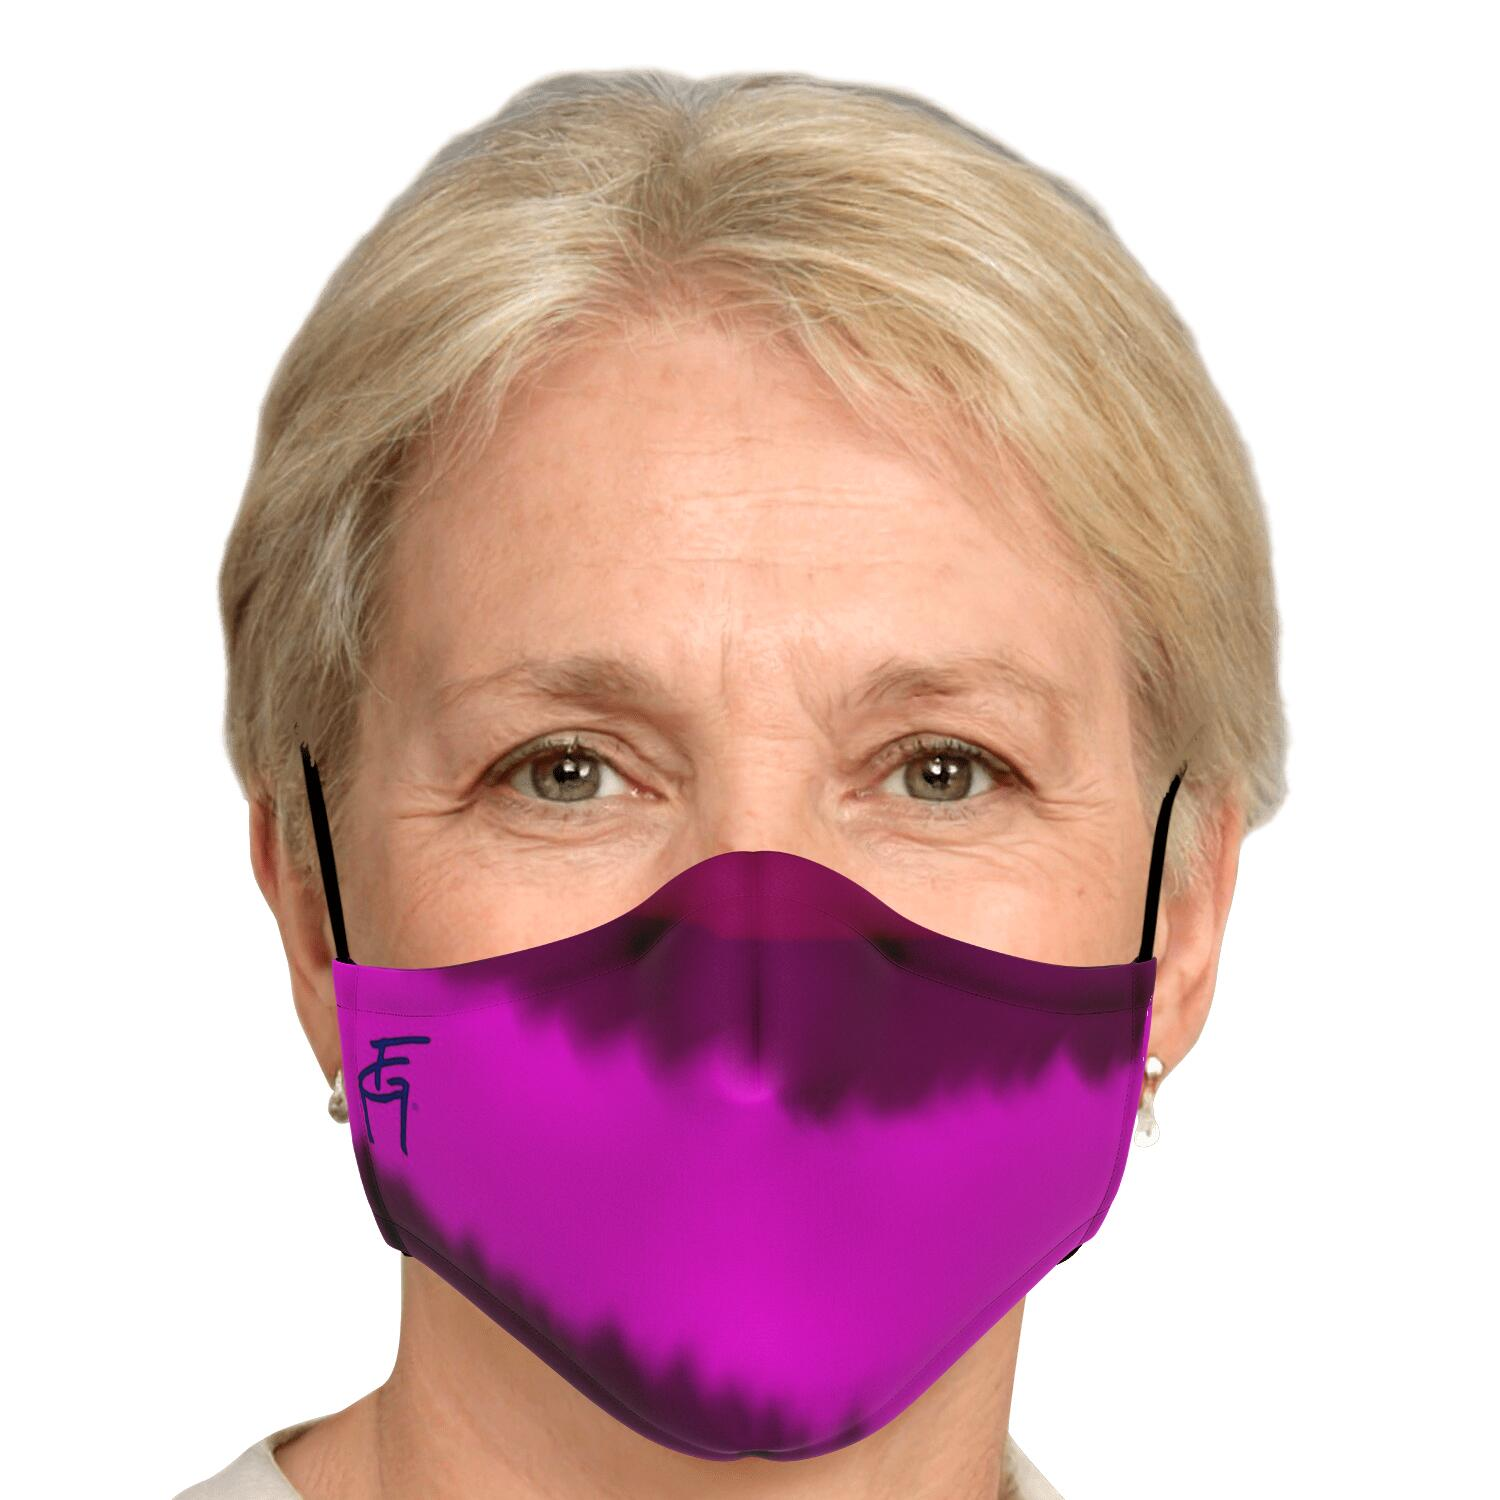 PURPLE HAZE BY FACEGARMENT.COM FACE MASK